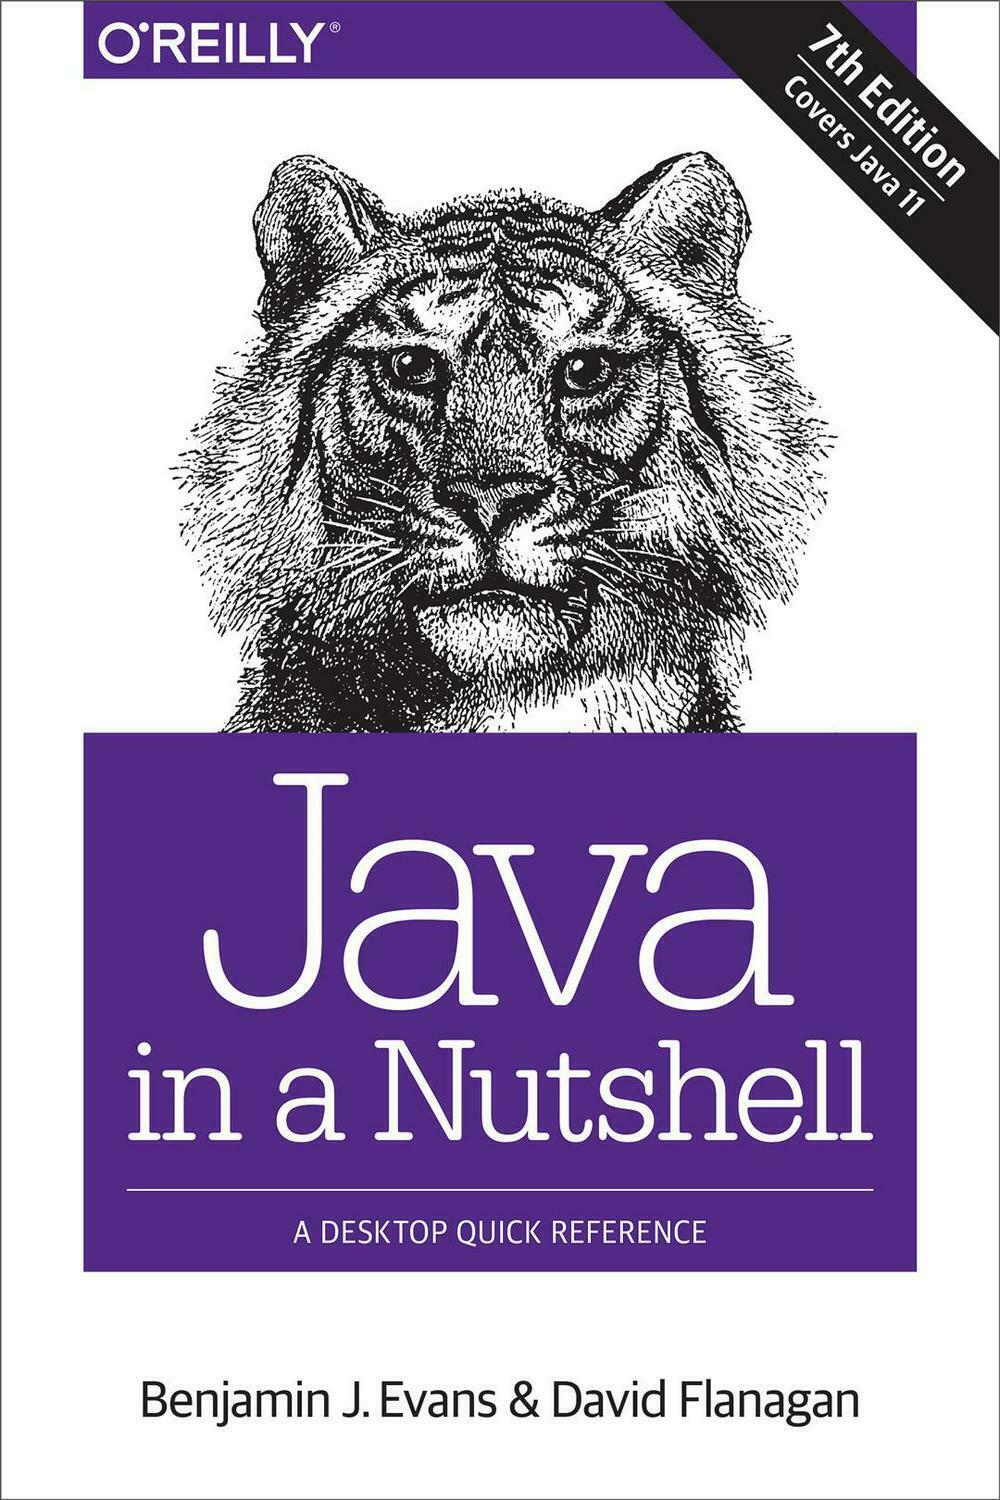 Java in a Nutshell 7e by Ben Evans Paperback Book Free Shipping! |